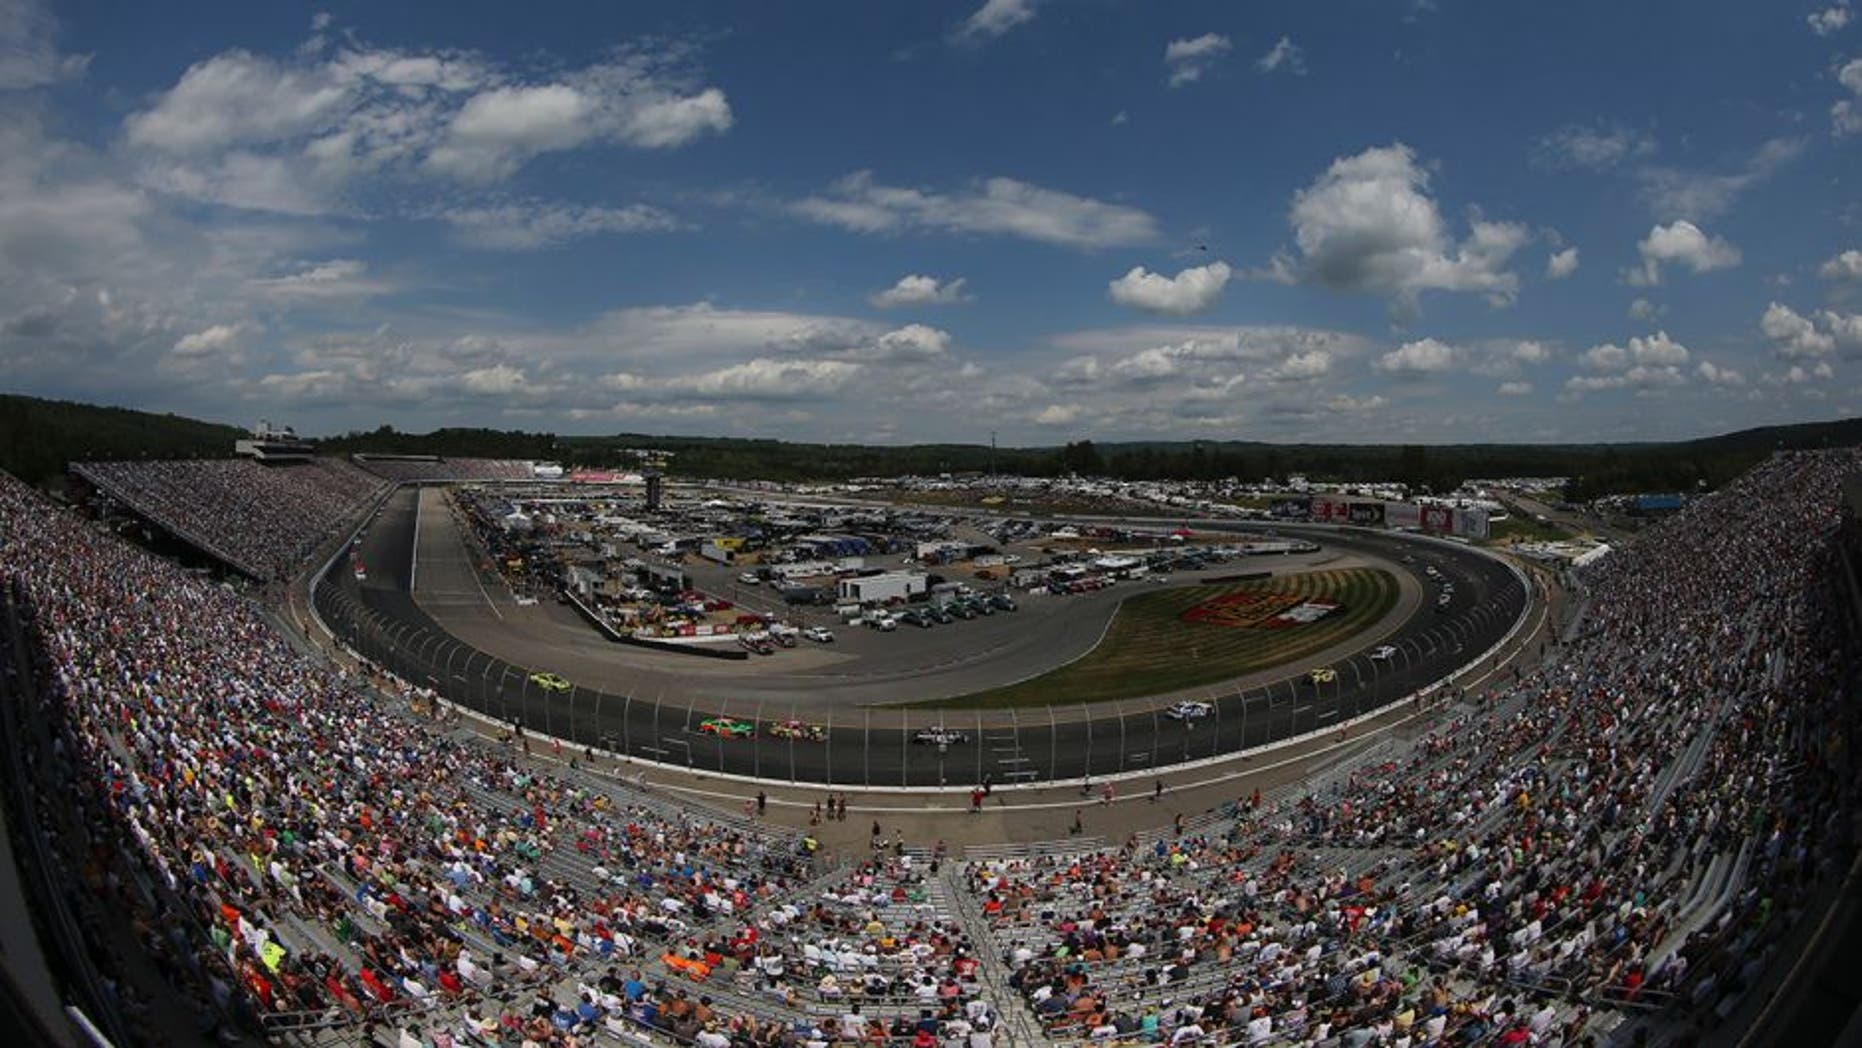 Drivers race during the NASCAR Sprint Cup Series 5-Hour ENERGY 301 at New Hampshire Motor Speedway on July 19, 2015 in Loudon, New Hampshire.